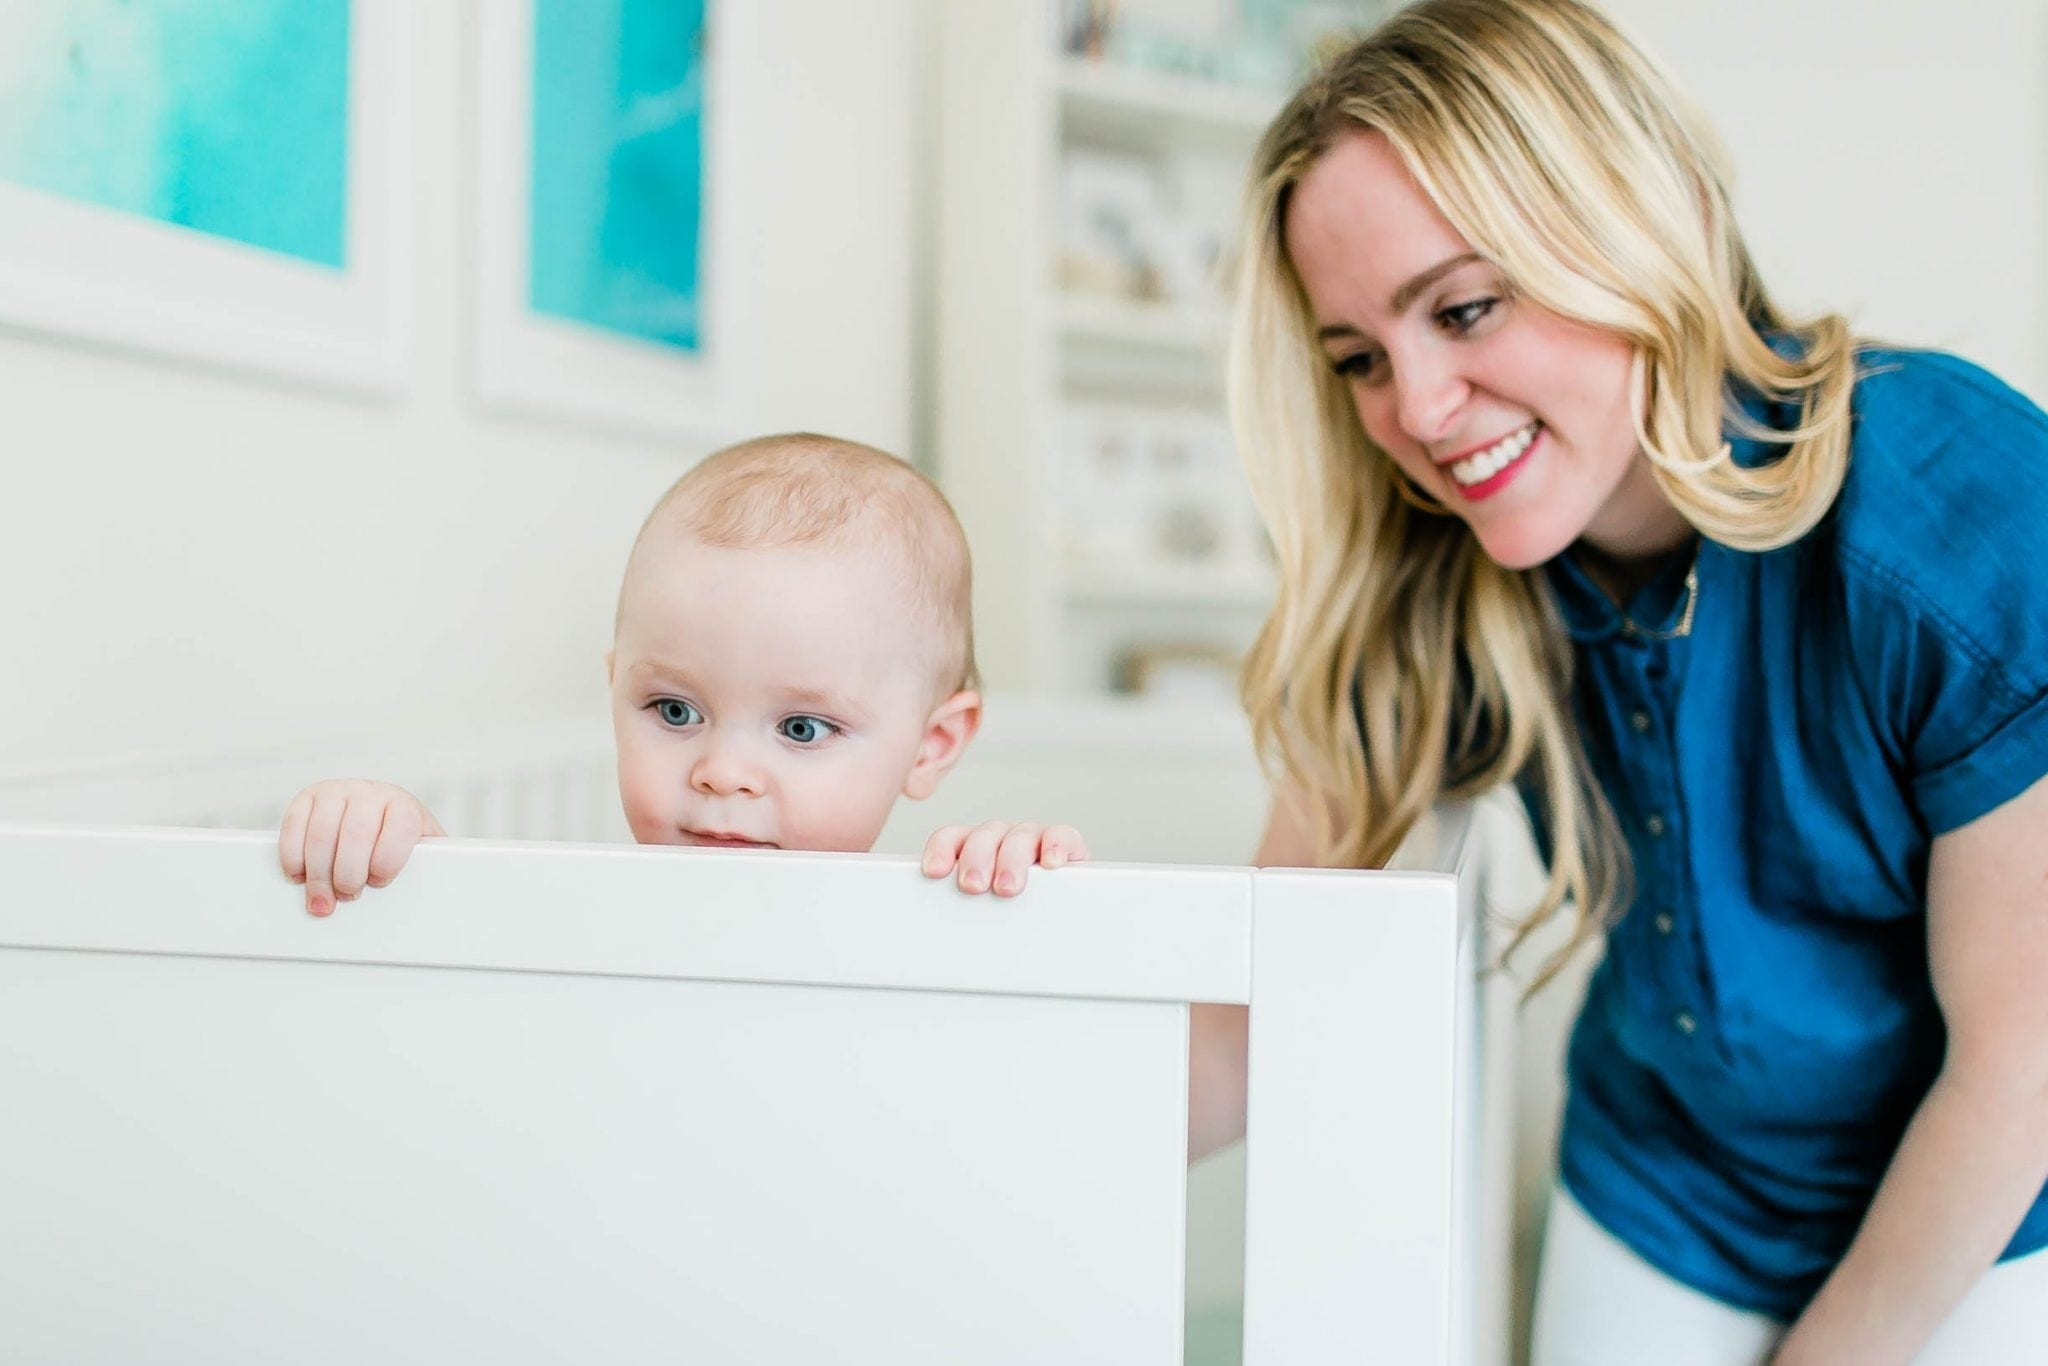 Parenting Tips for the Transition from Baby to Toddler